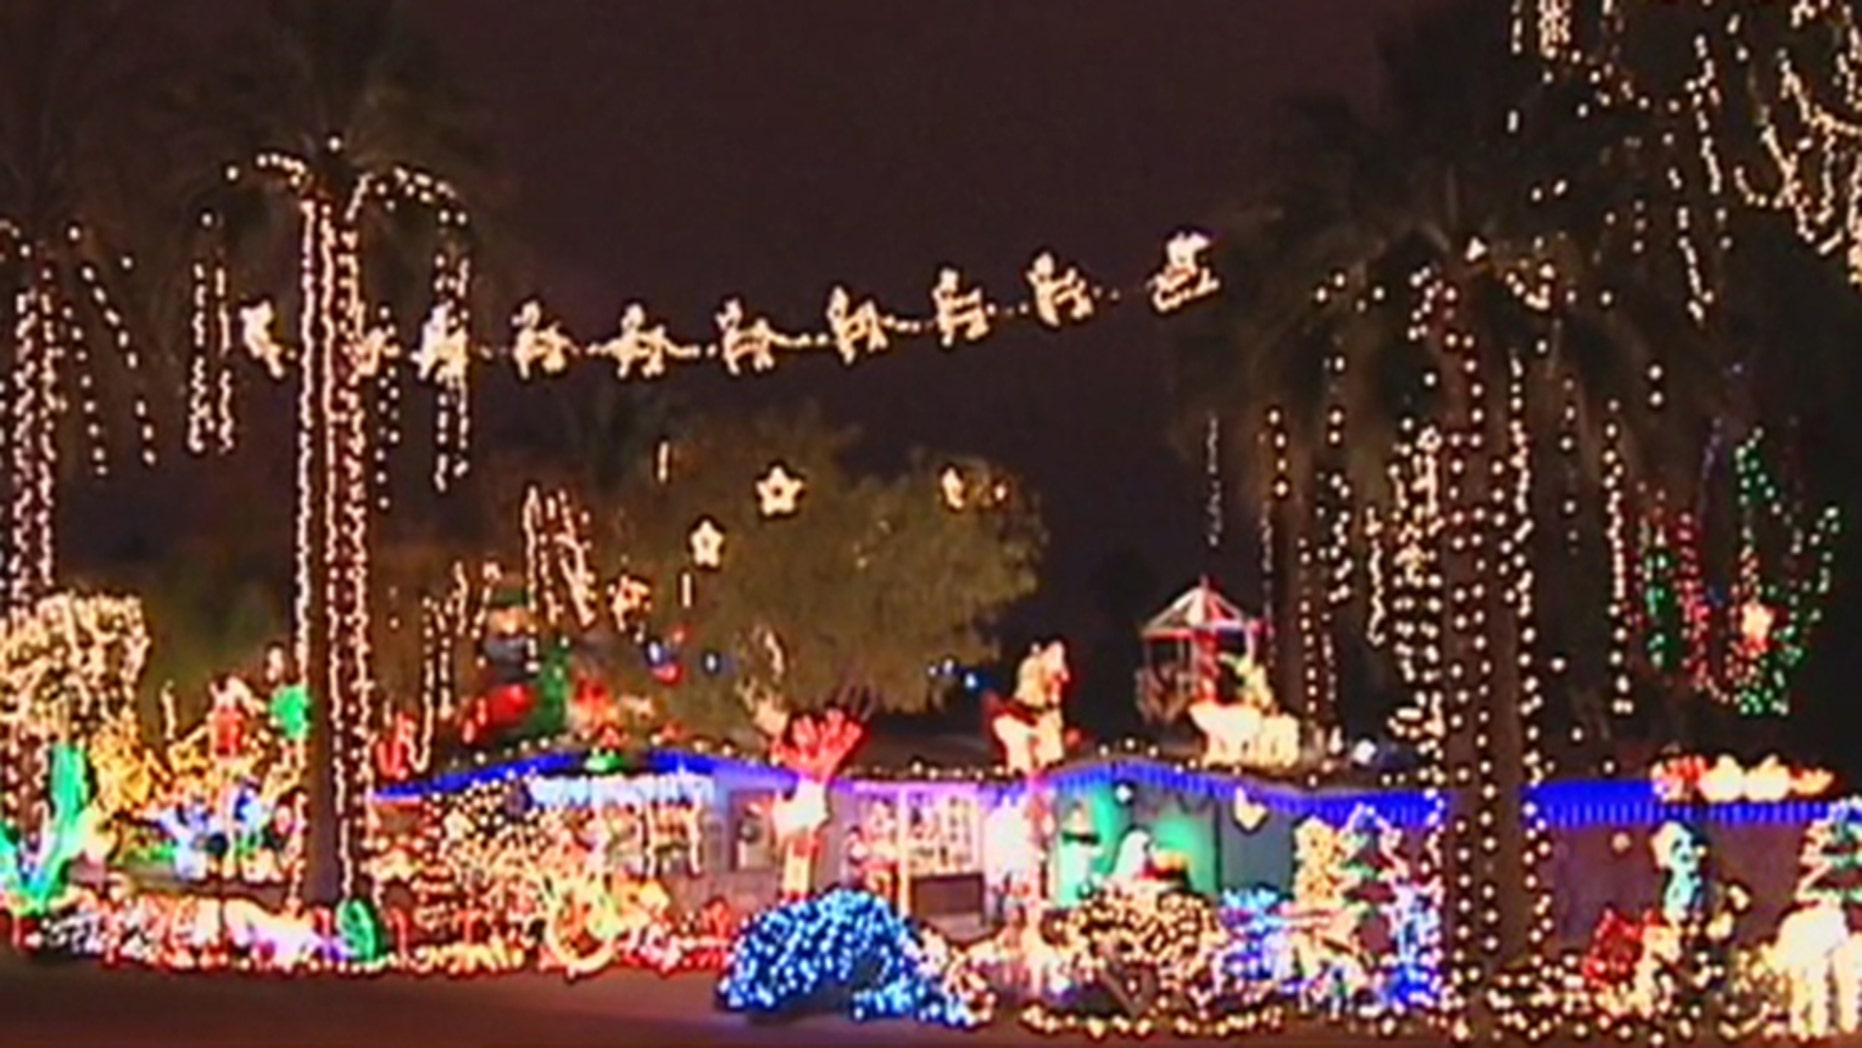 Lee Sepanek says complaints from homeowners and demands from Phoenix officials have discouraged him from setting up his annual Christmas display.